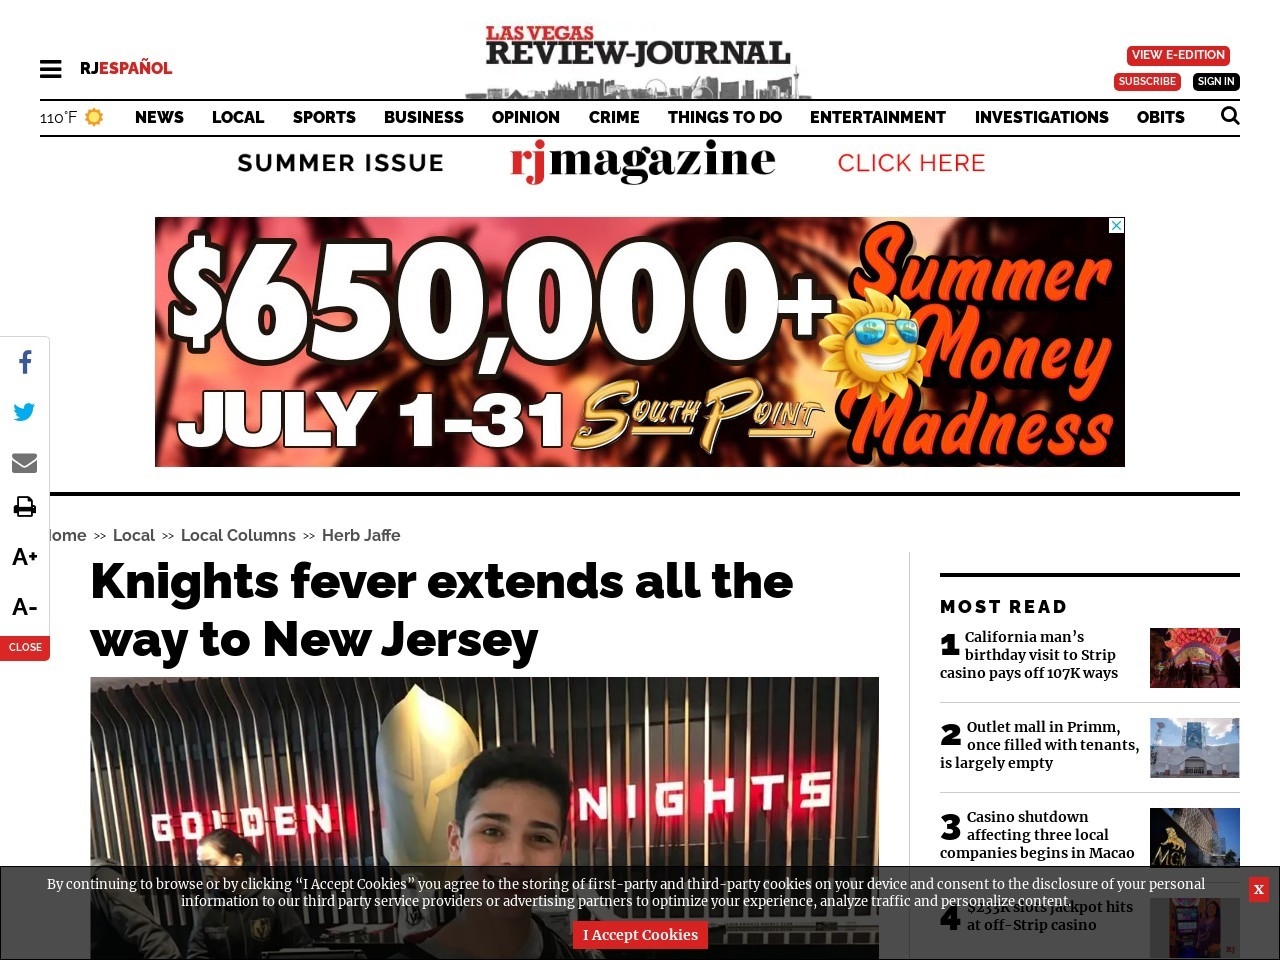 Herb Jaffe: Knights fever extends all the way to New Jersey